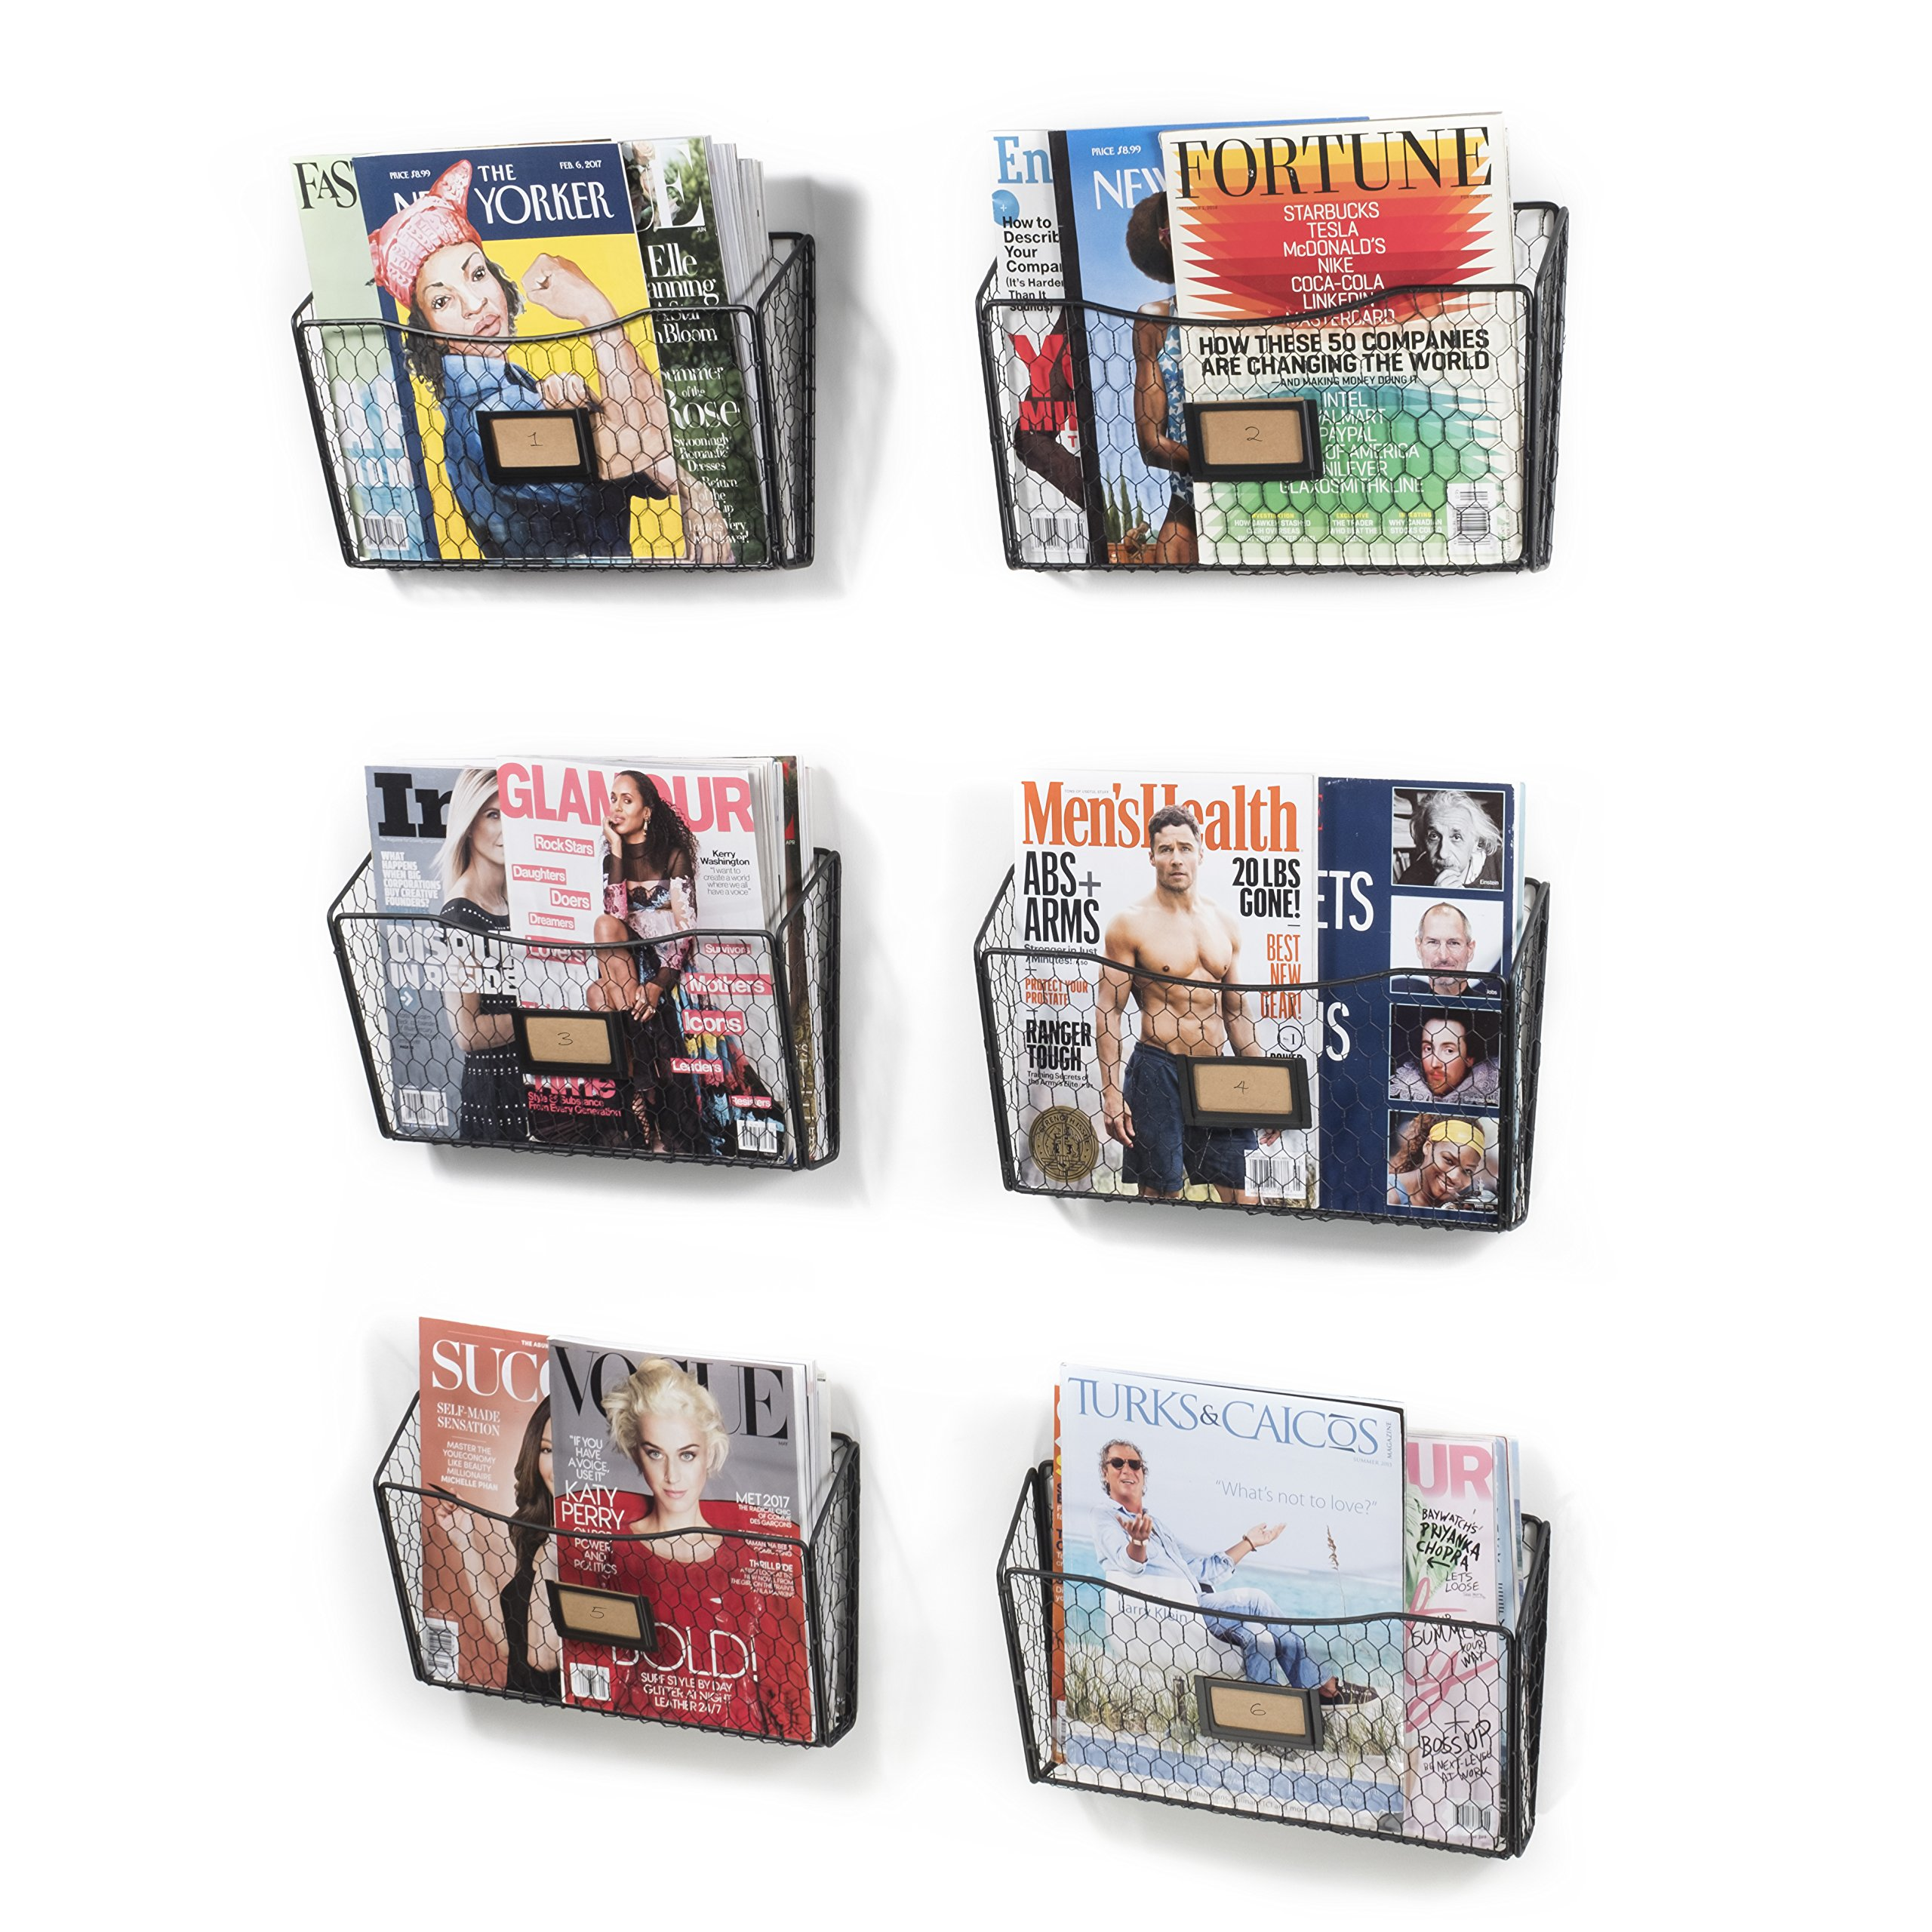 Wall35 Felic Hanging File Holder - Wall Mounted Metal Chicken Wire Magazine Rack - Office Folder Organizer with Name Tag Slot in Black (6)